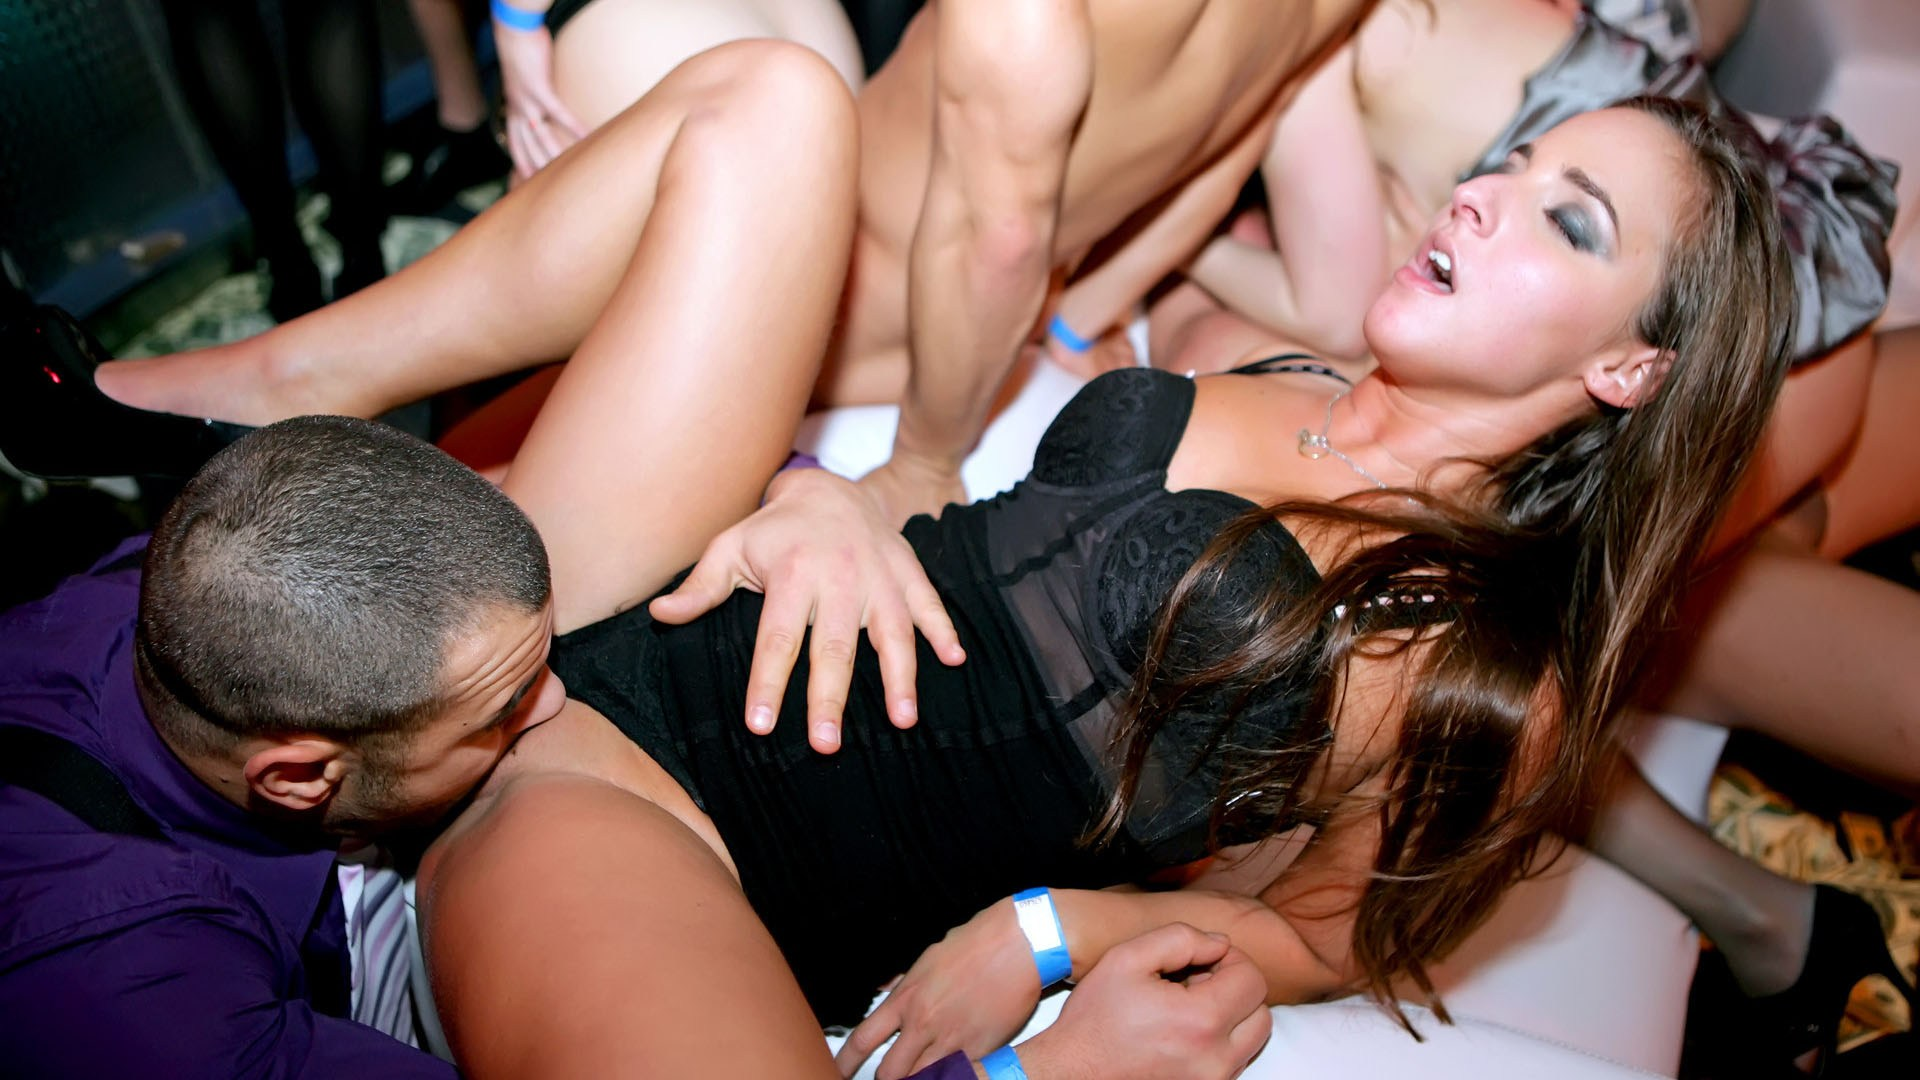 Amateur party hd and amateur pov fuck 3